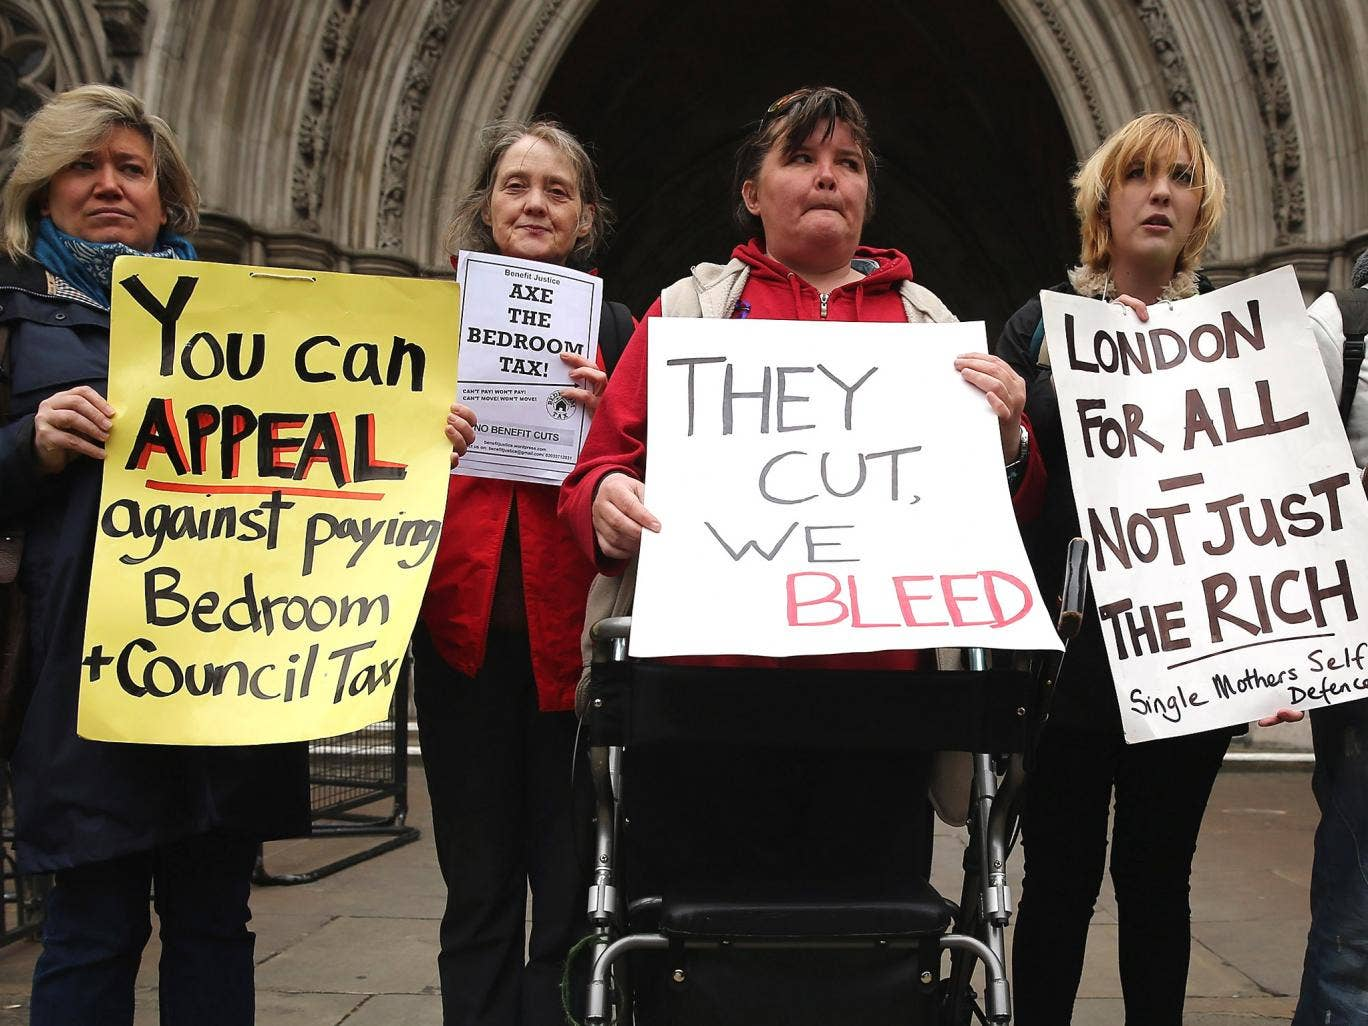 Demonstrators protesting against the bedroom tax outside the High Court, last year